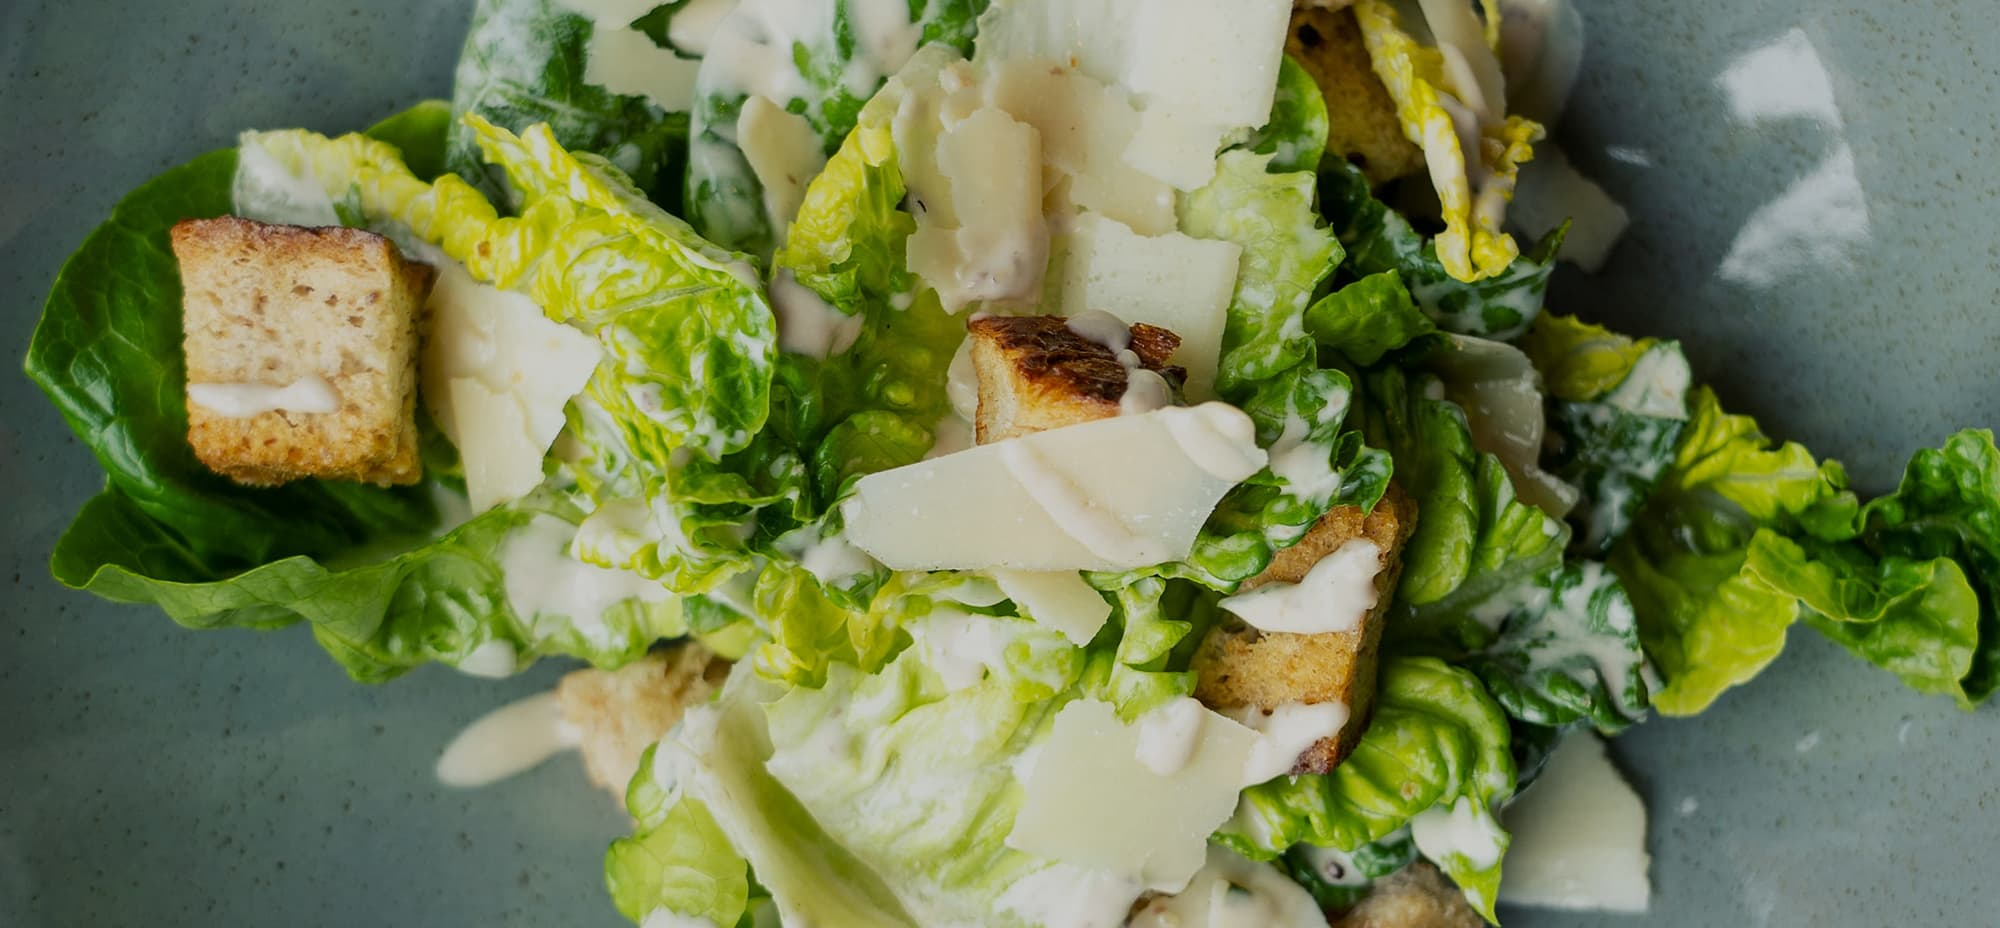 Image of a Caesar salad